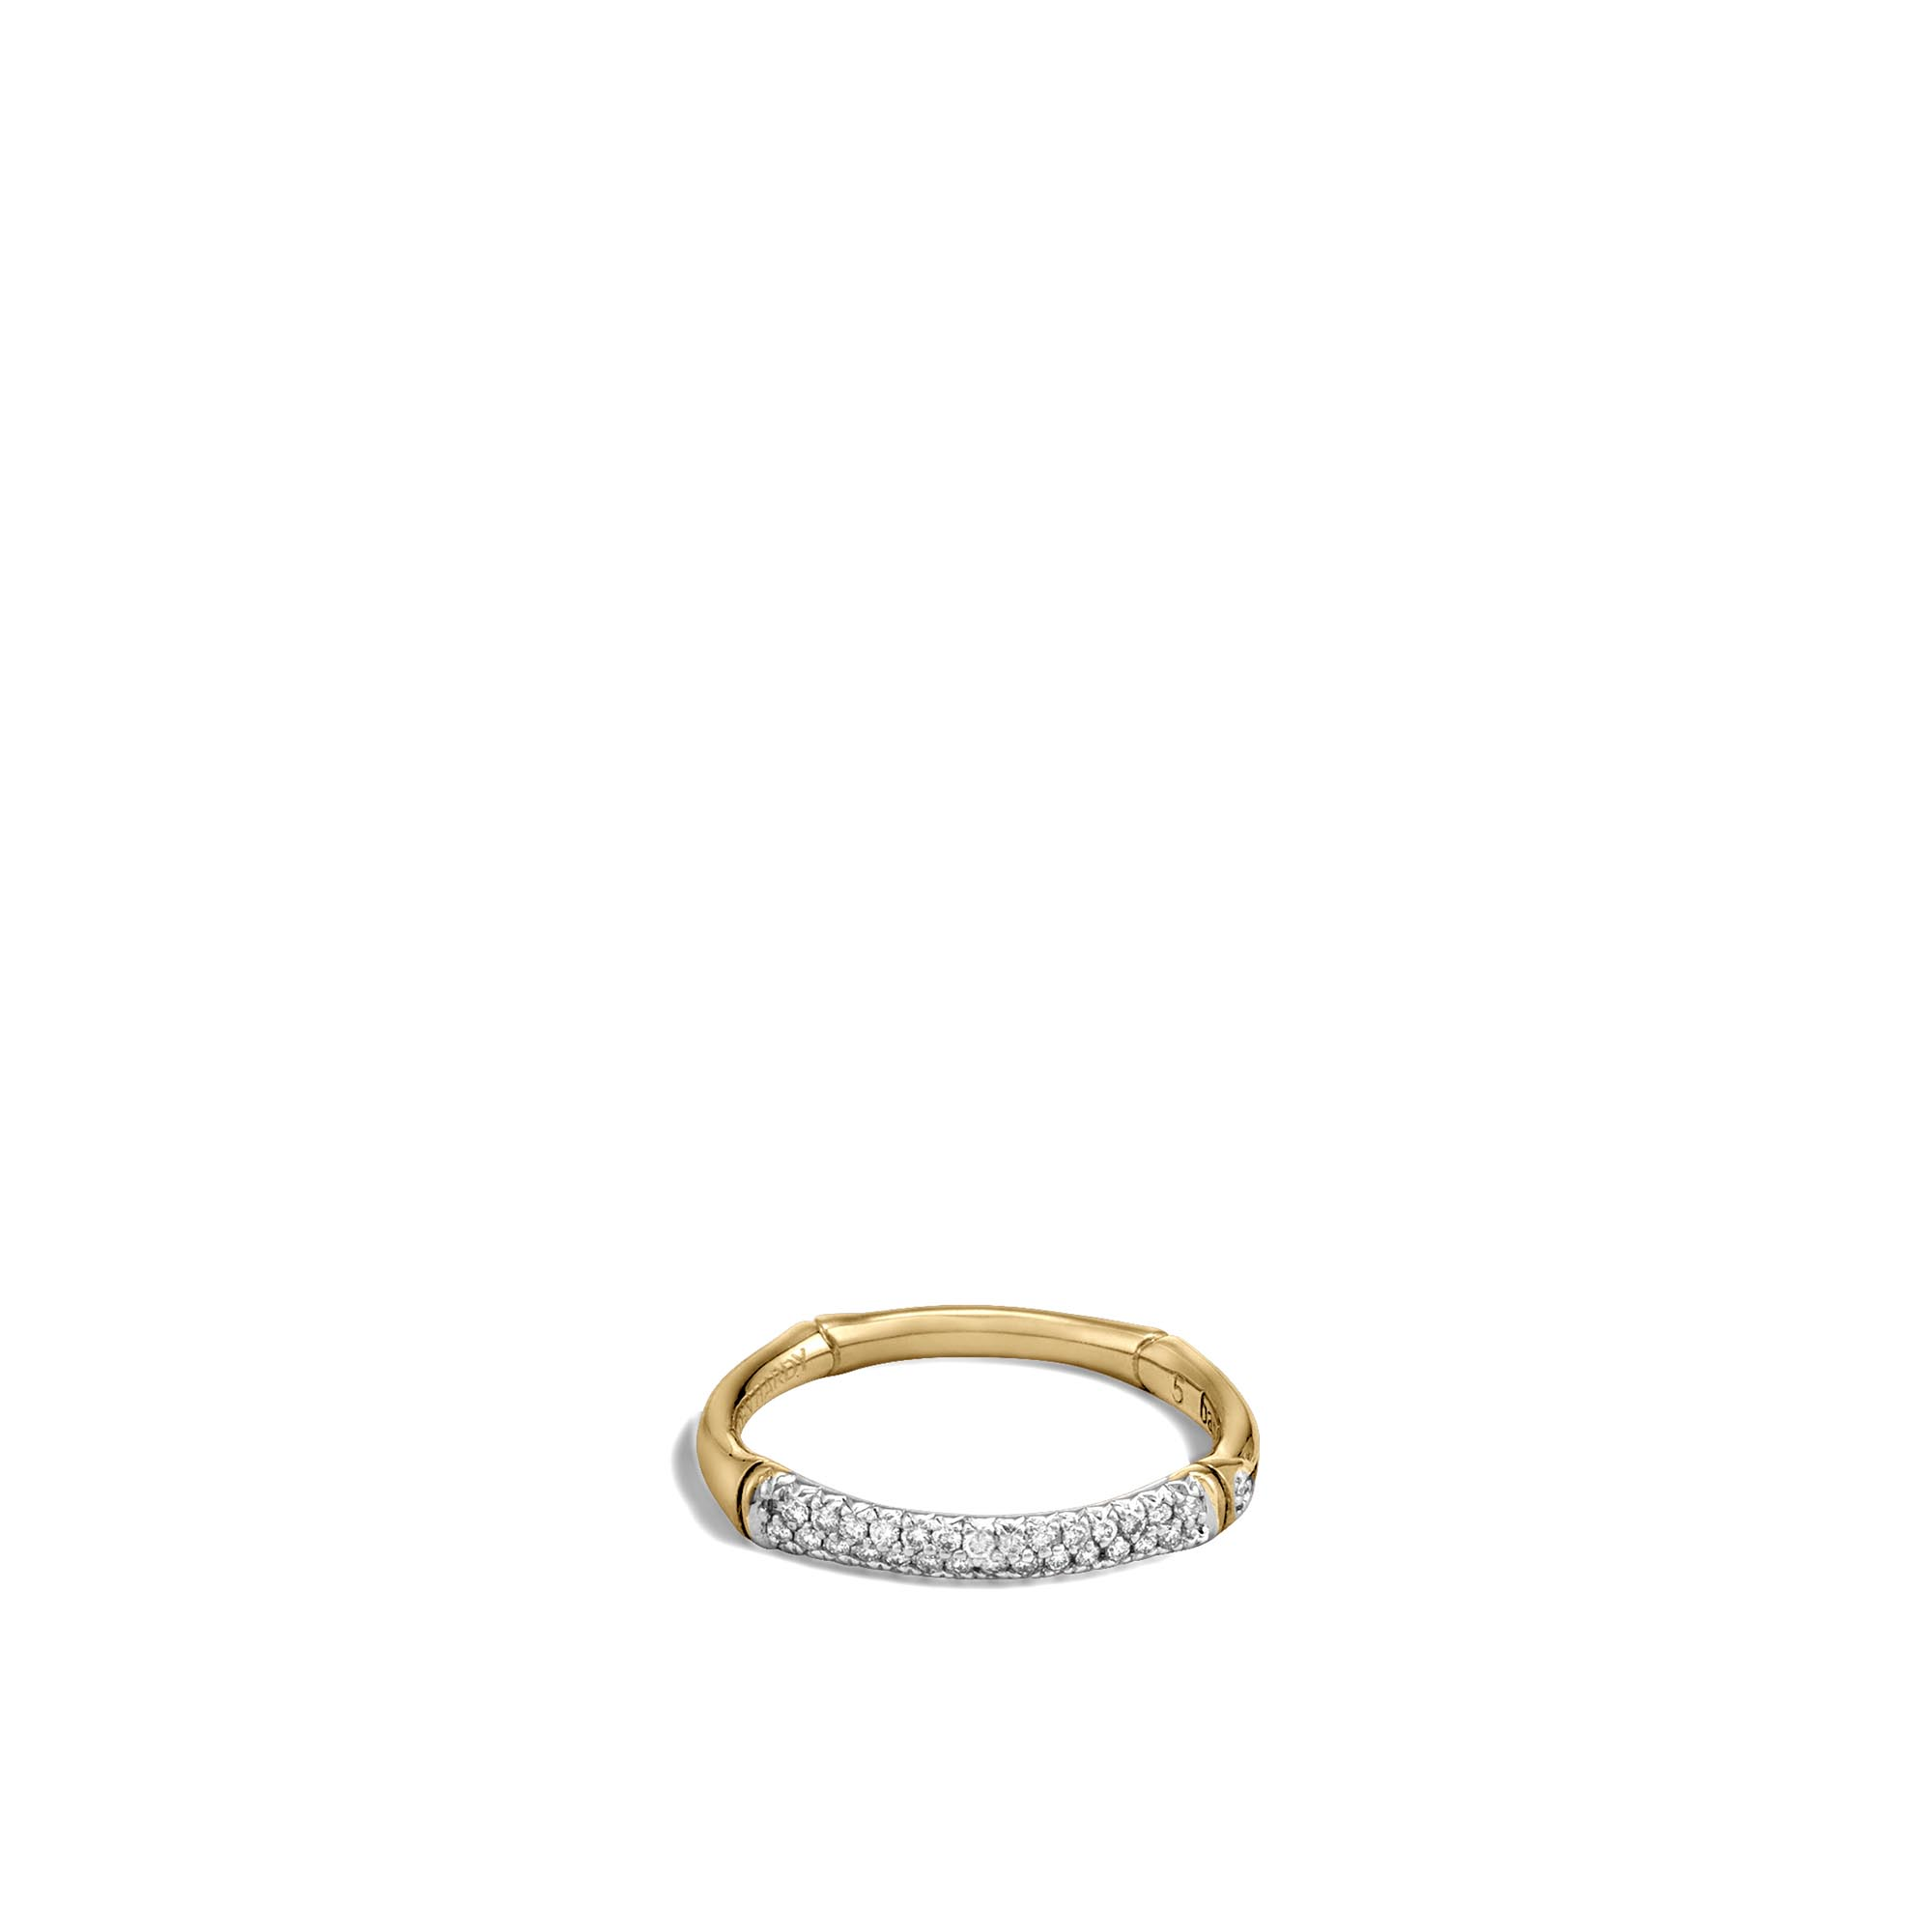 Bamboo 2.5MM Band Ring in 18K Gold with Diamonds, White Diamond, large